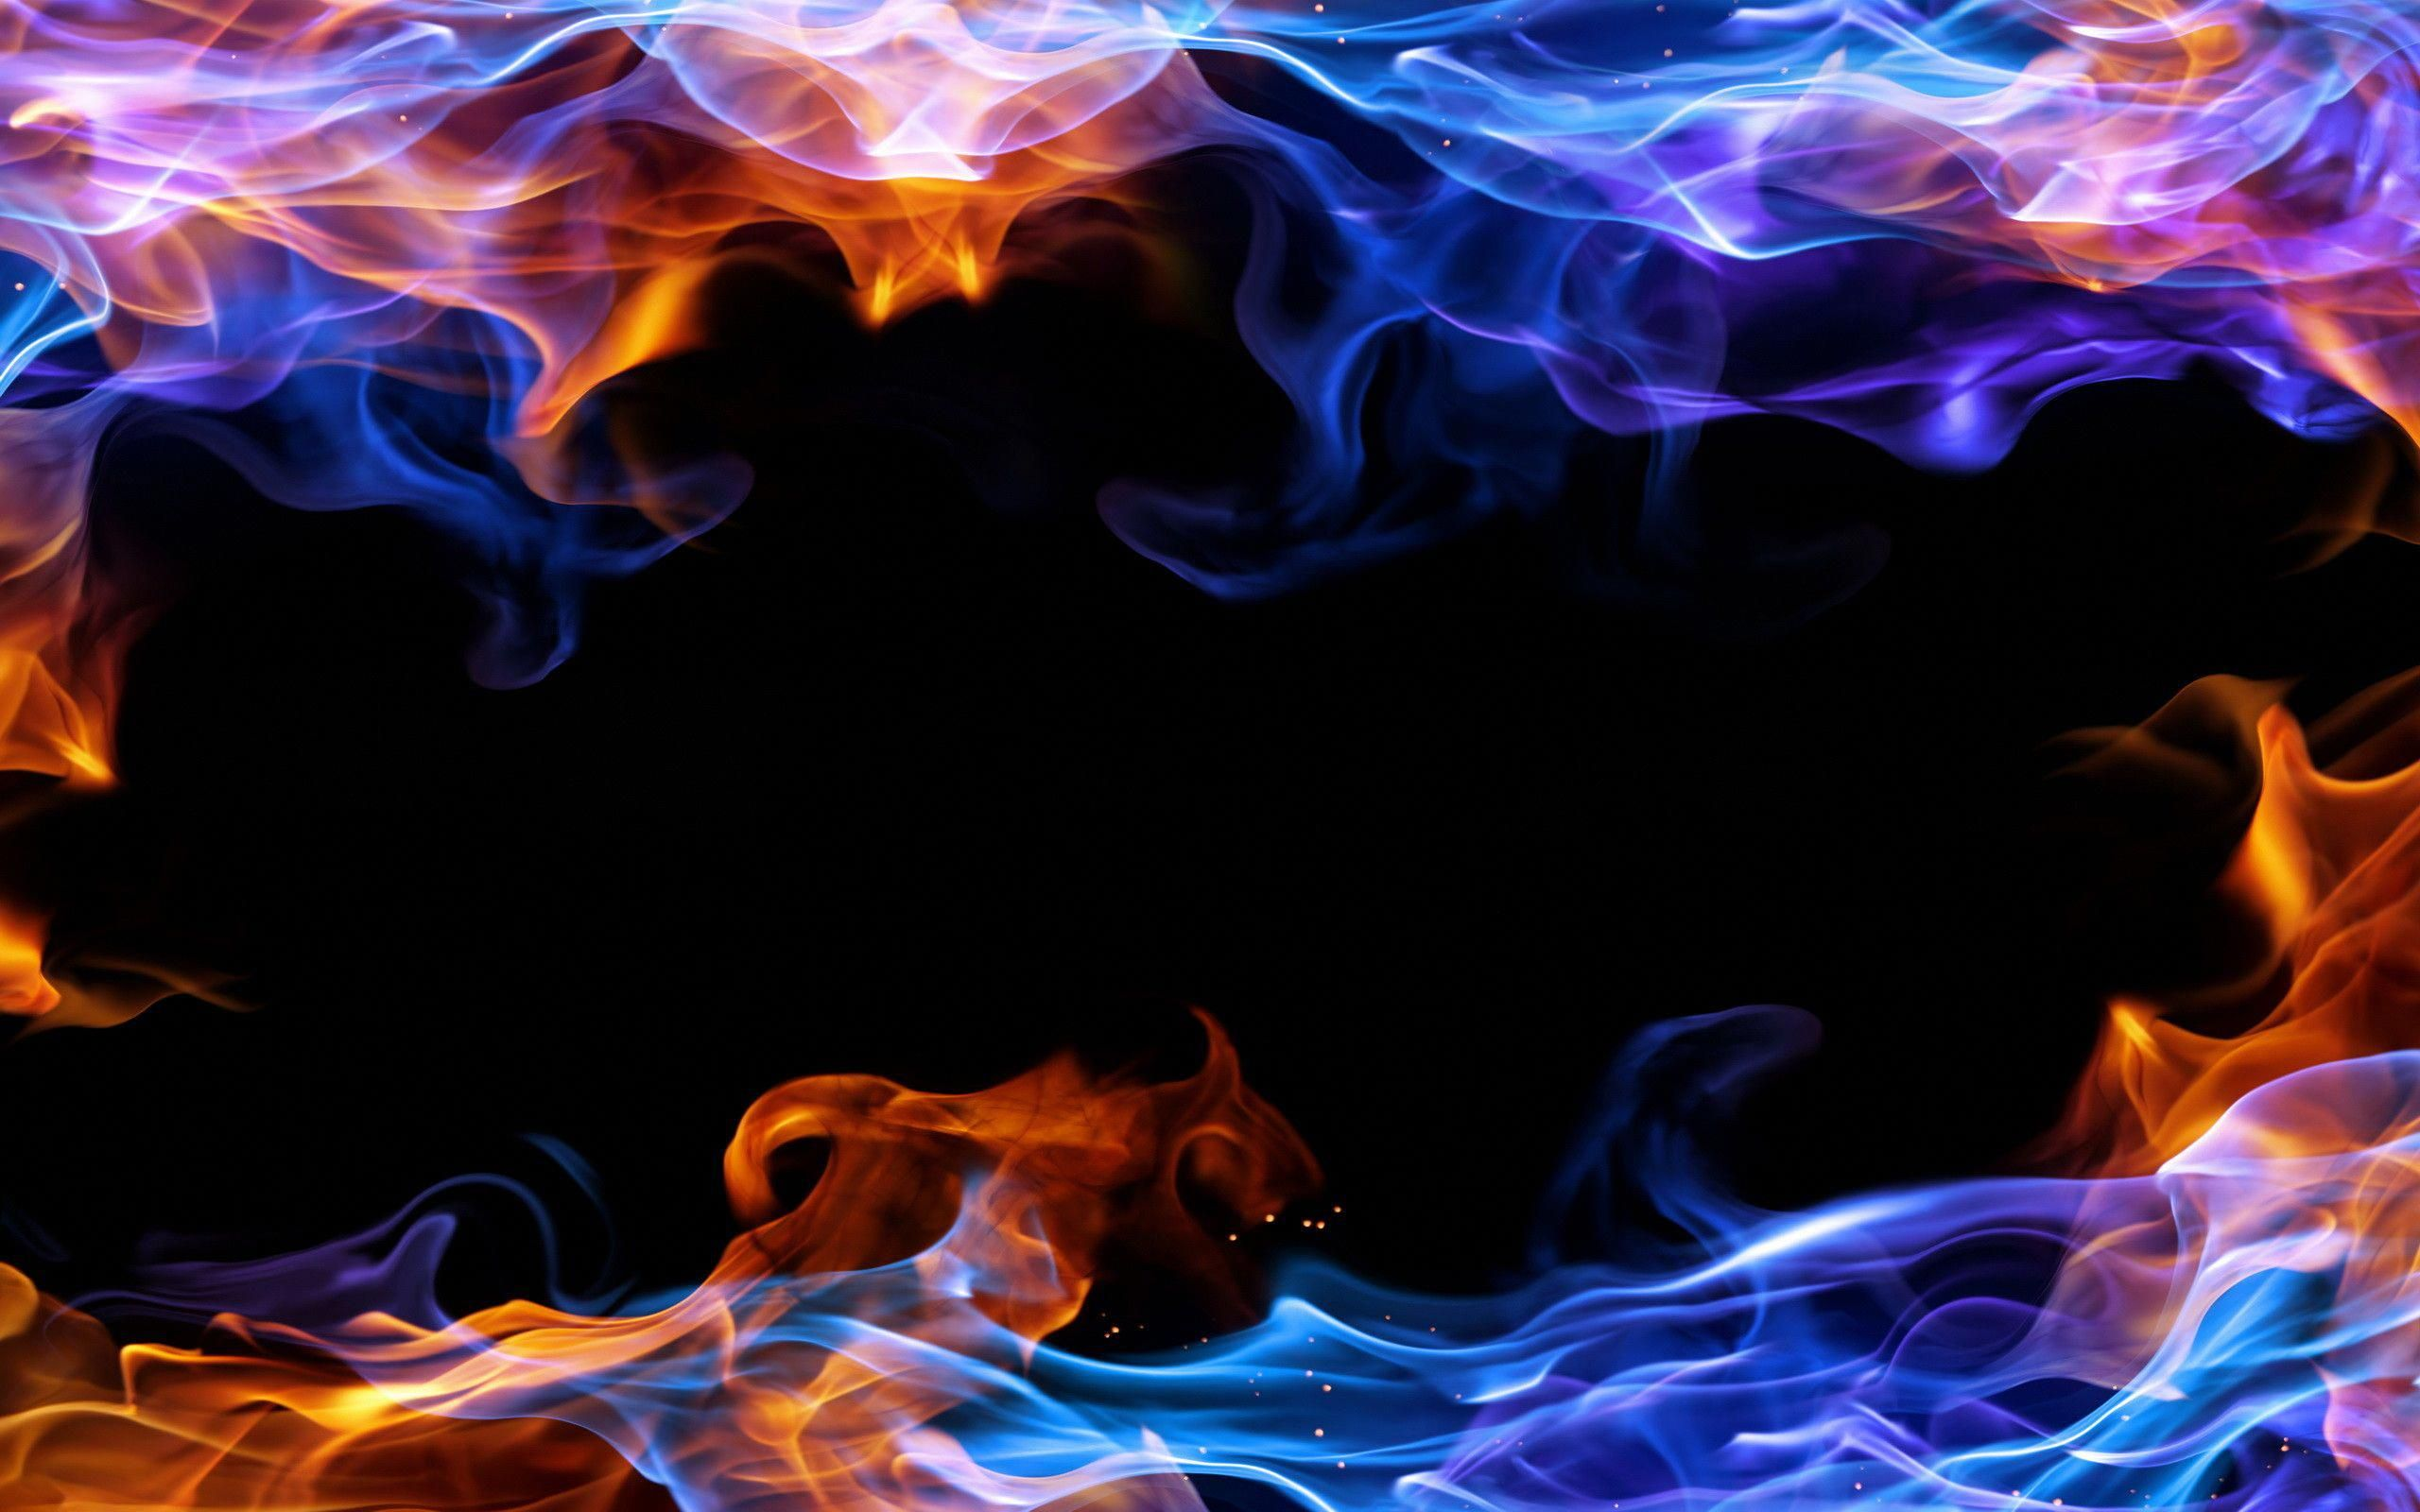 Popular Blue Fire Wallpaper Hd 2560x1600 For Android Tablet Smoke Background Fire Art Fire Image